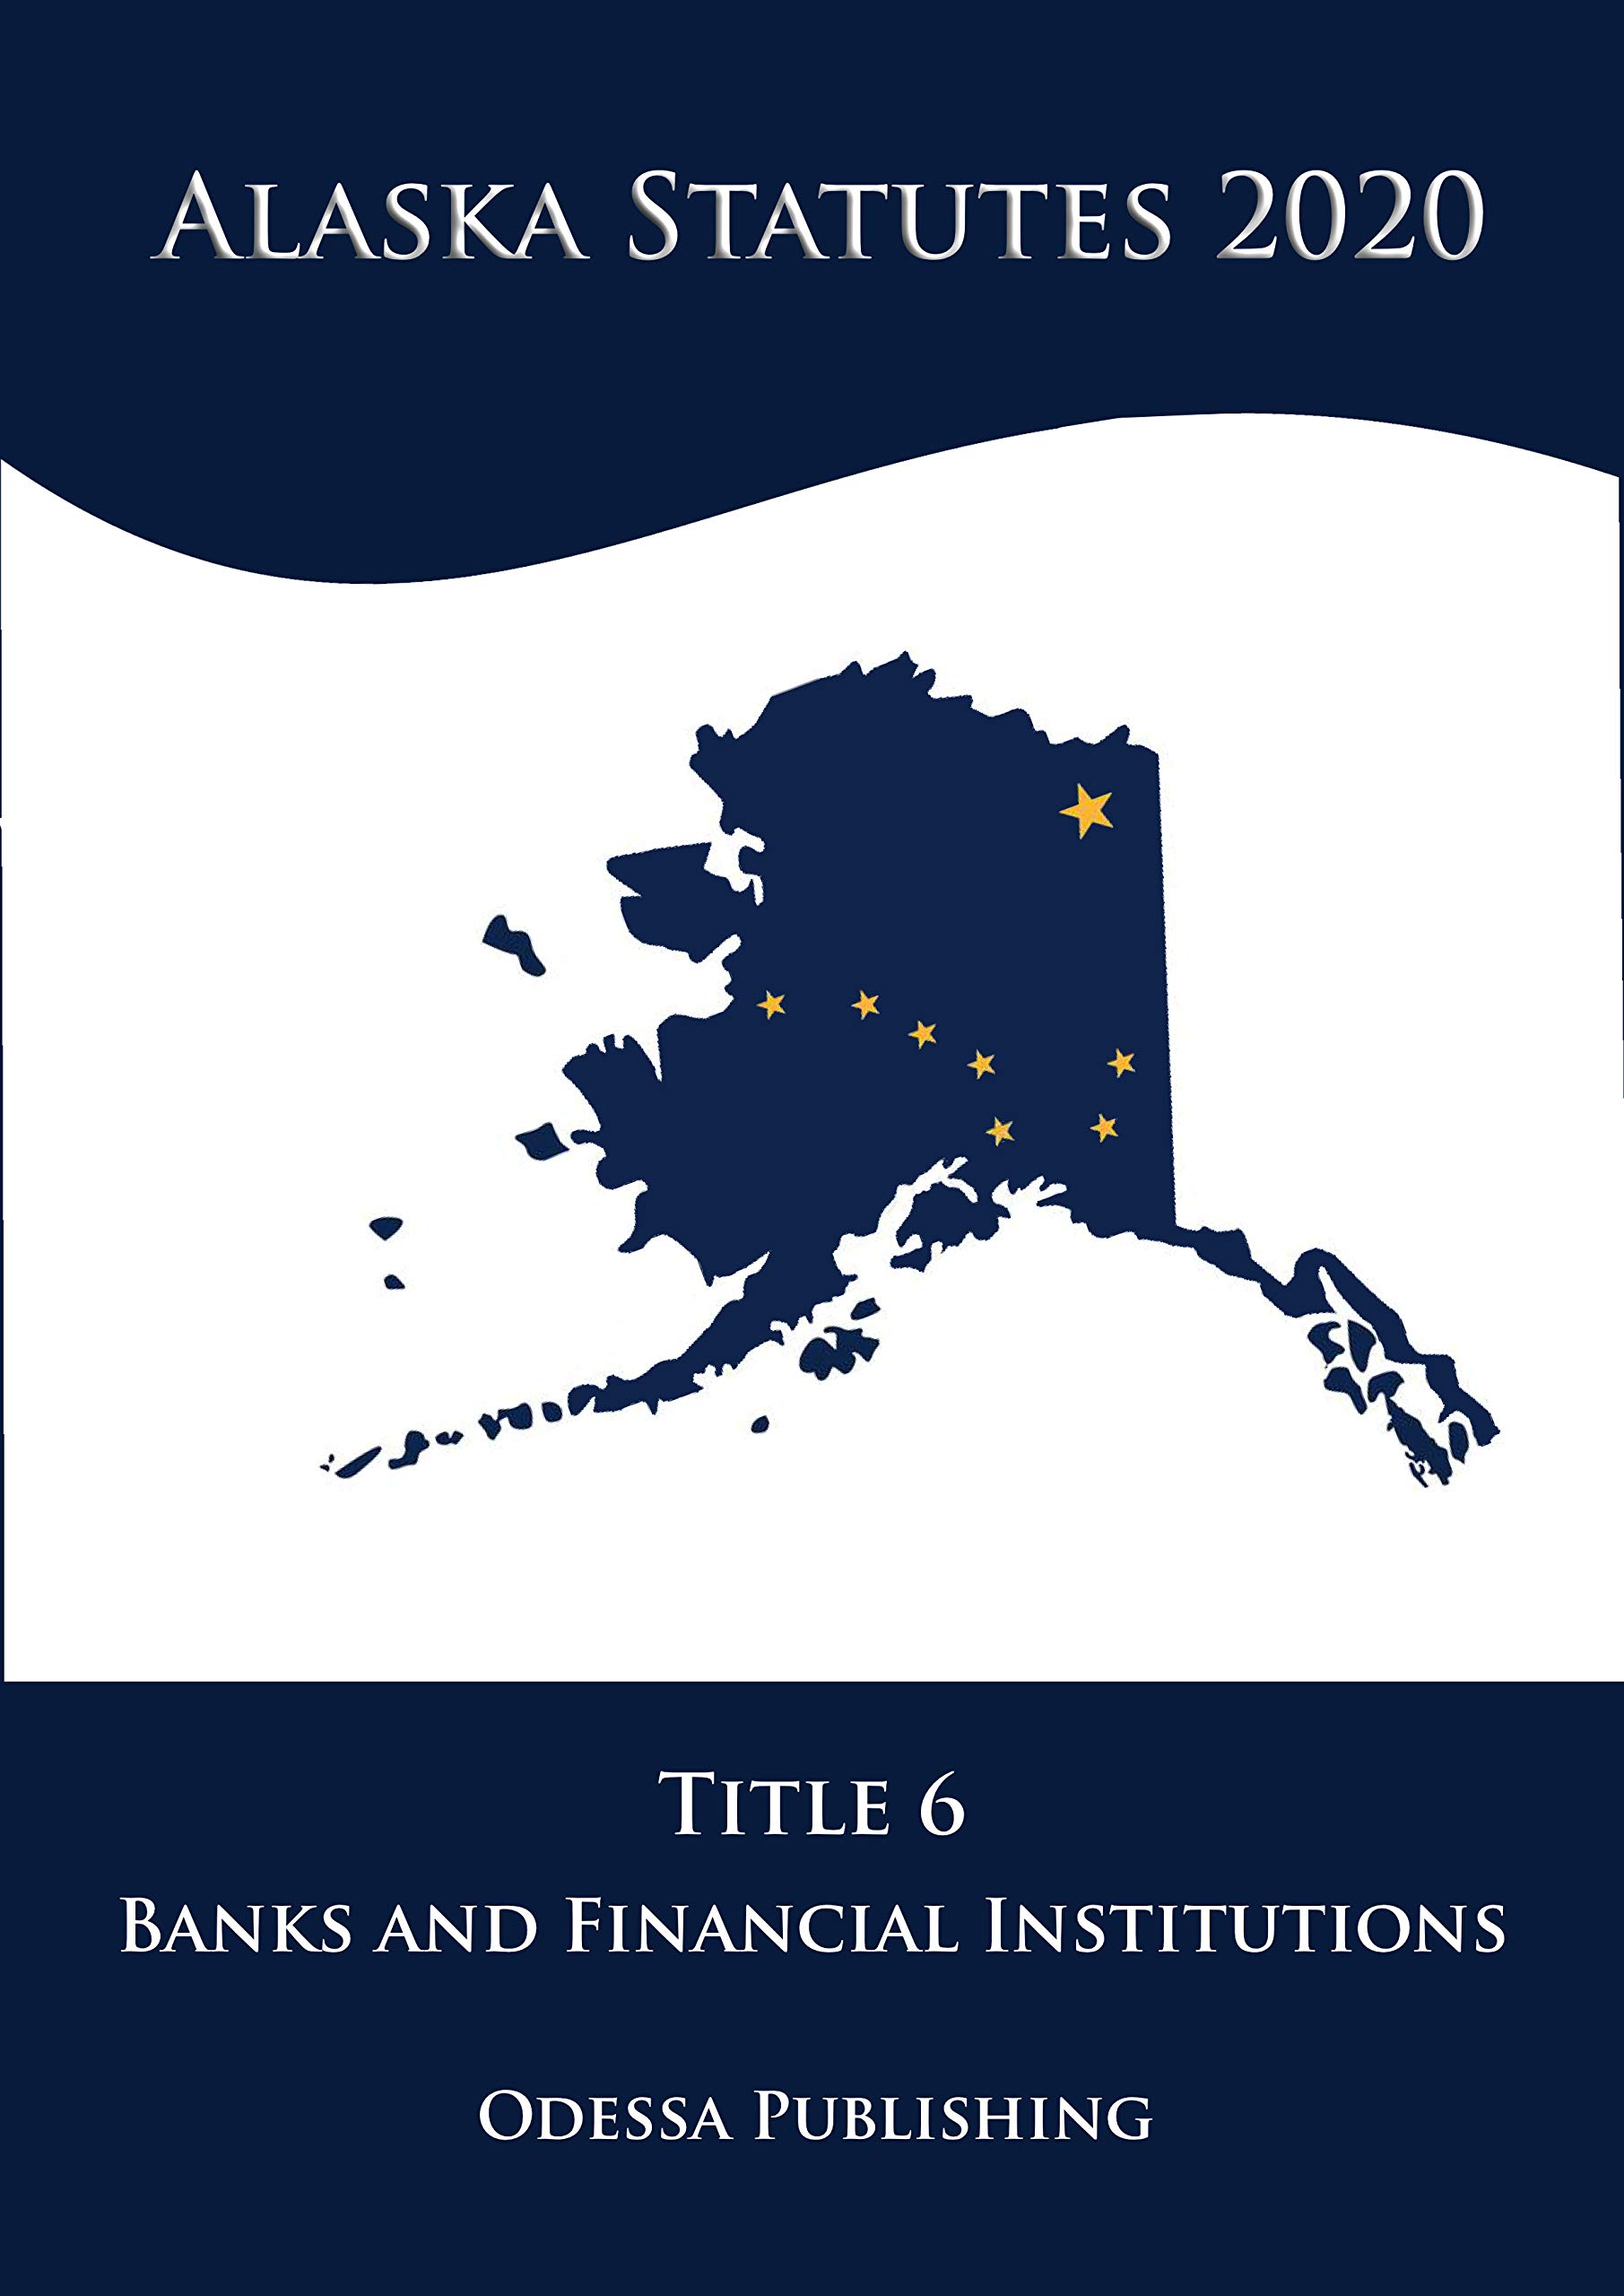 Alaska Statutes 2020 Title 6 Banks and Financial Institutions